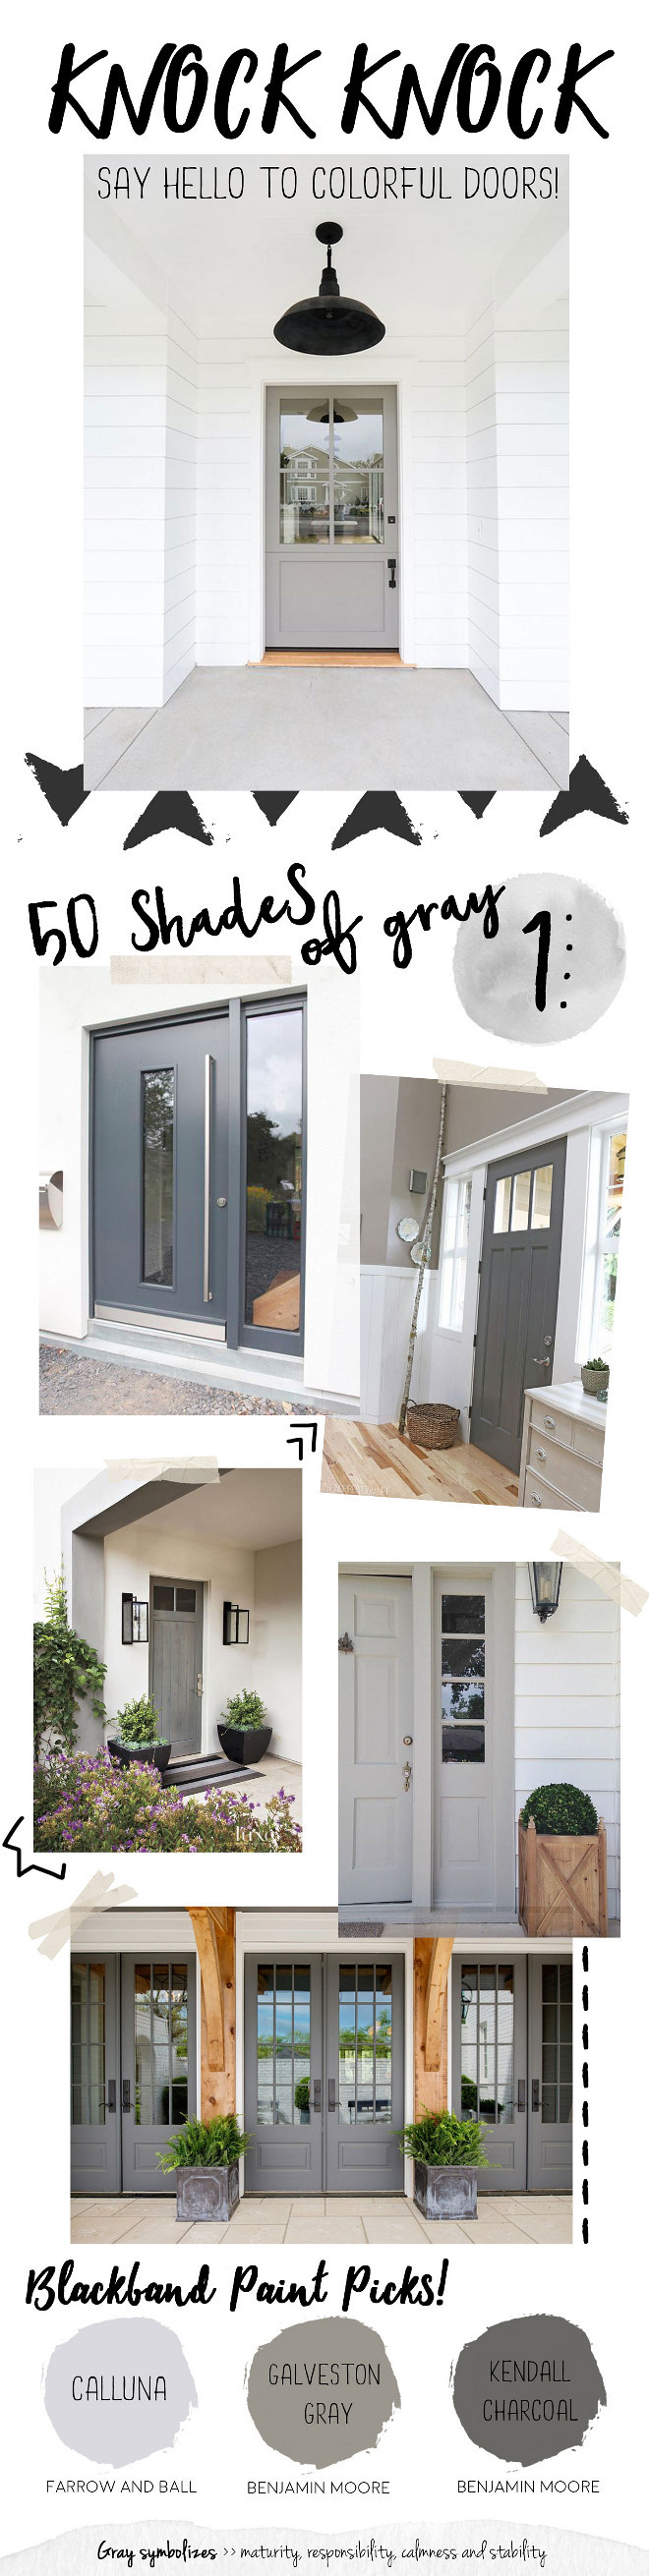 Gray Door Paint Color. Best grey front door paint colors. You simply can't go wrong with a gray front door. Calluna by Farrow and Ball, Galveston Gray by Benjamin Moore. Kendall Charcoal by Benjamin Moore. #CallunabyFarrowandBall #GalvestonGraybyBenjaminMoore #KendallCharcoalbyBenjaminMoore